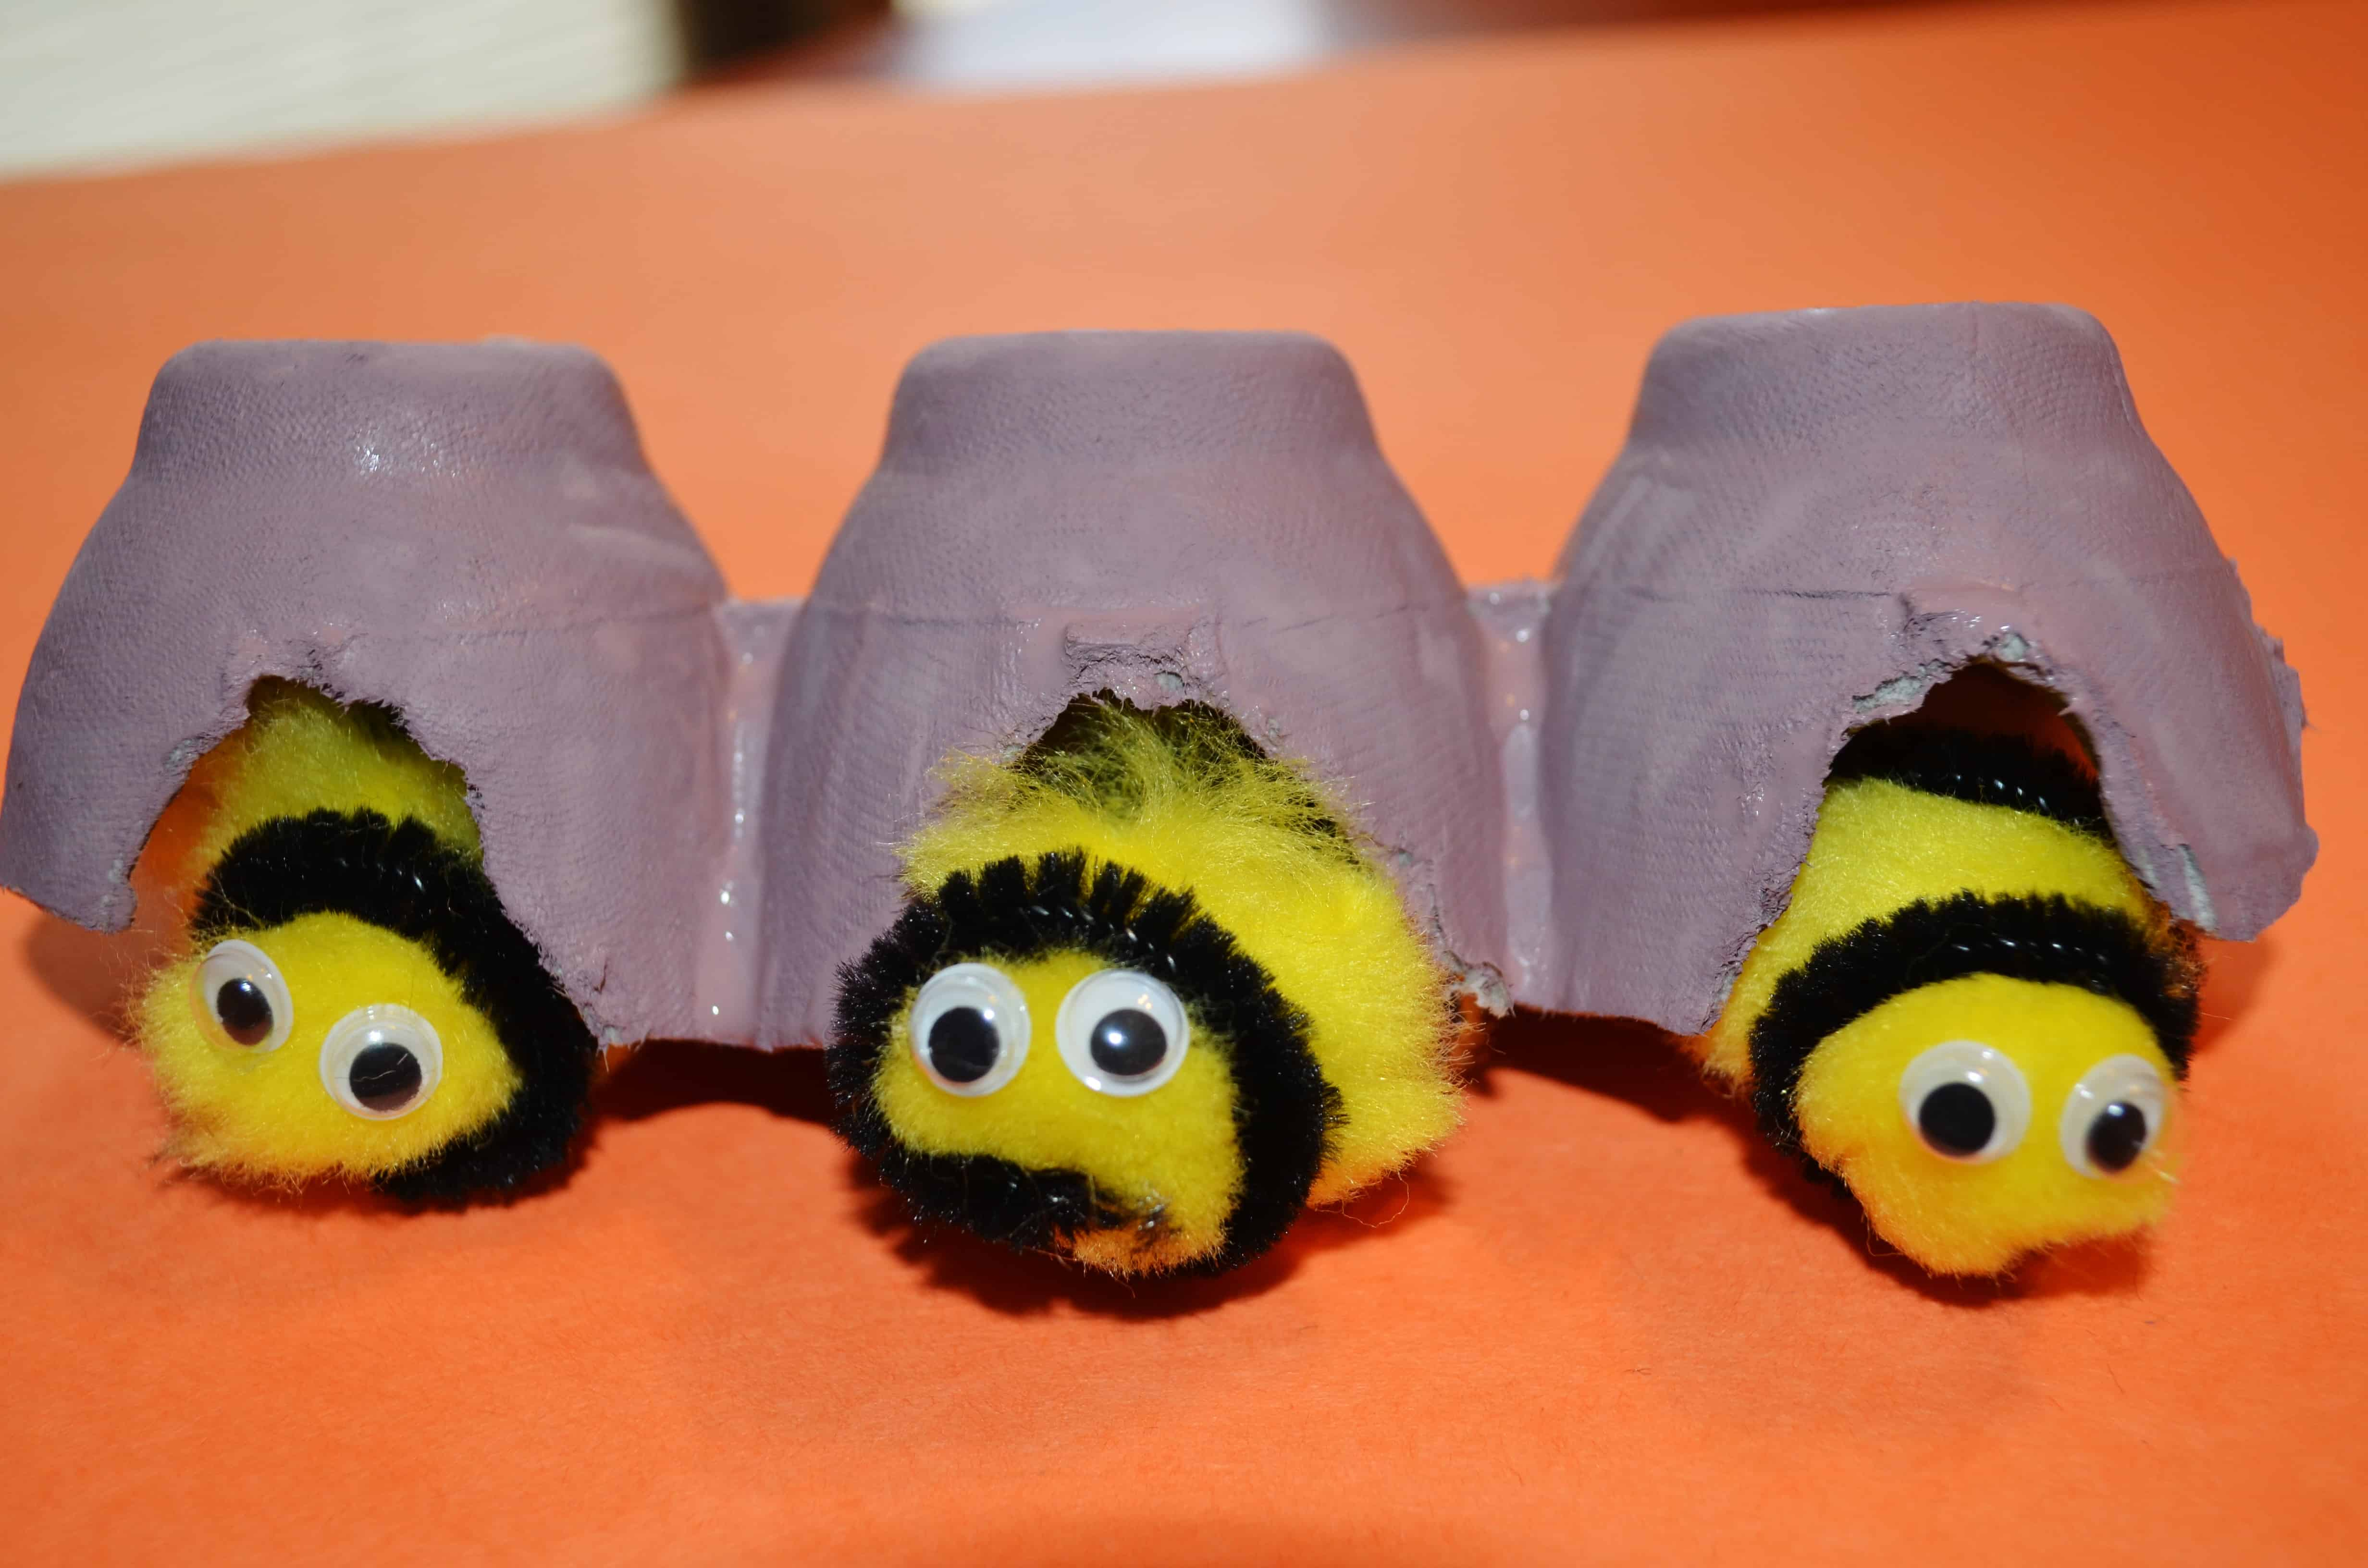 Craft bumble bee - Now